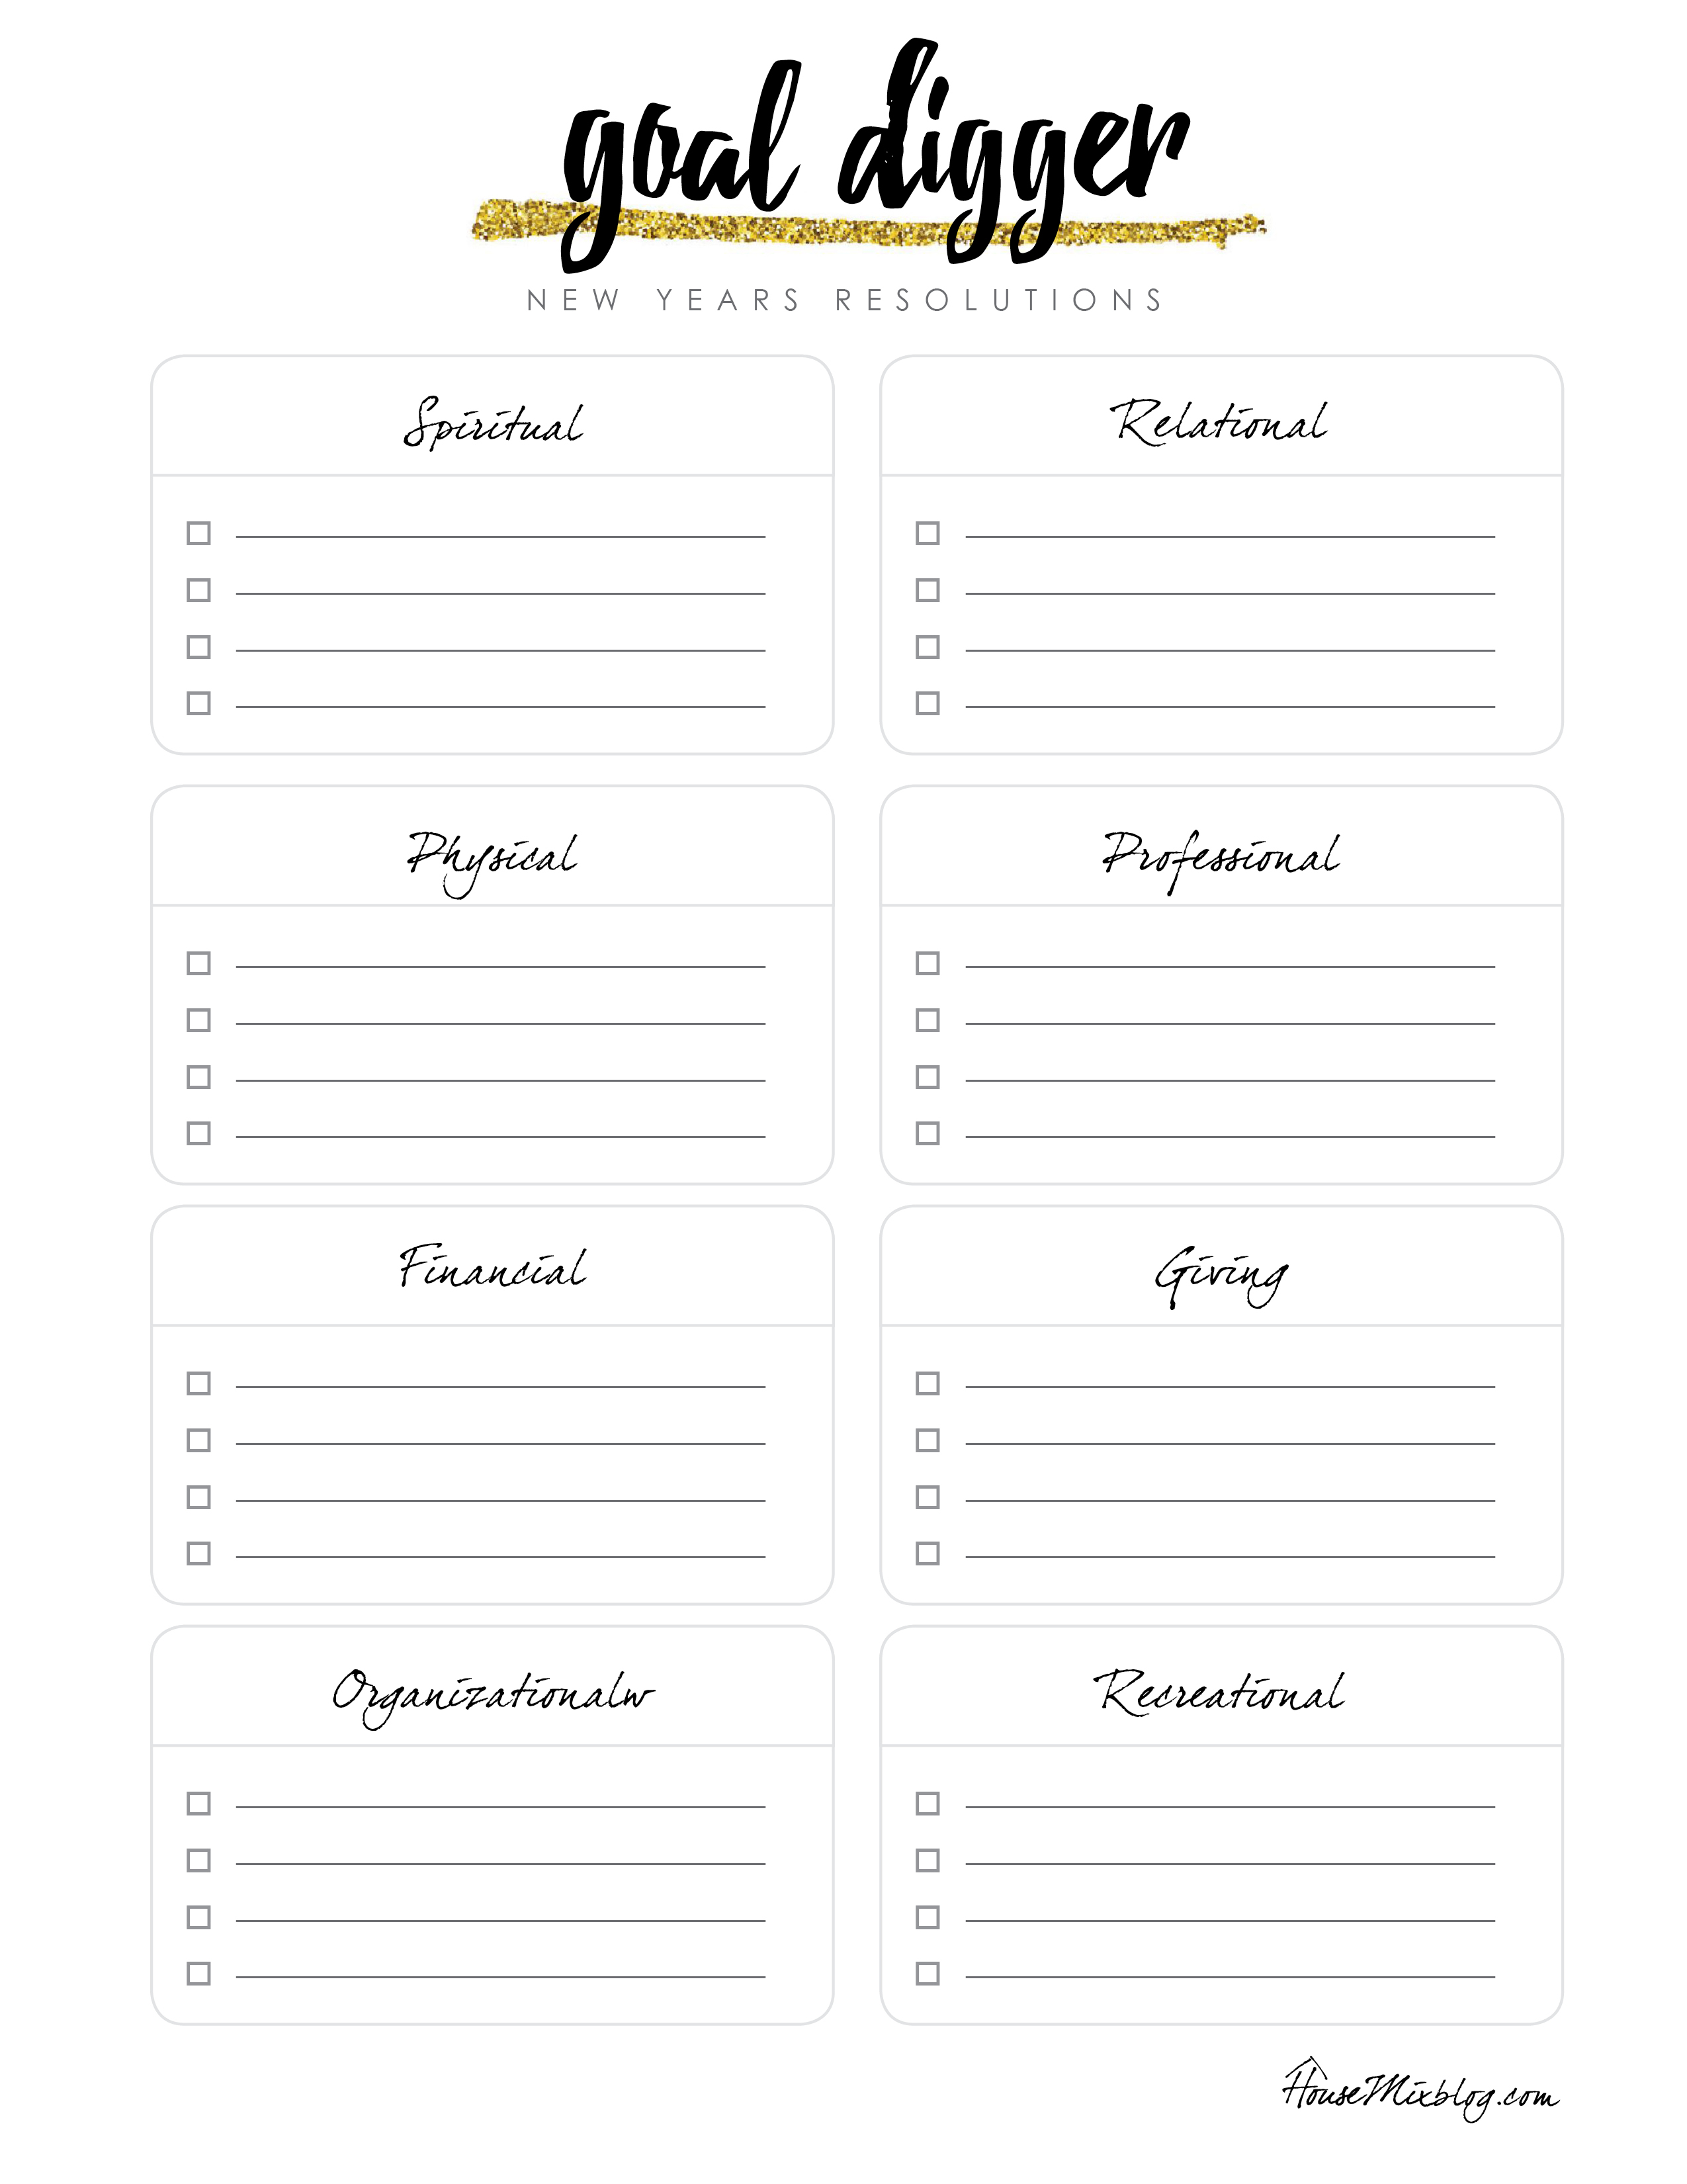 Goal Digger New Year S Resolution Printable